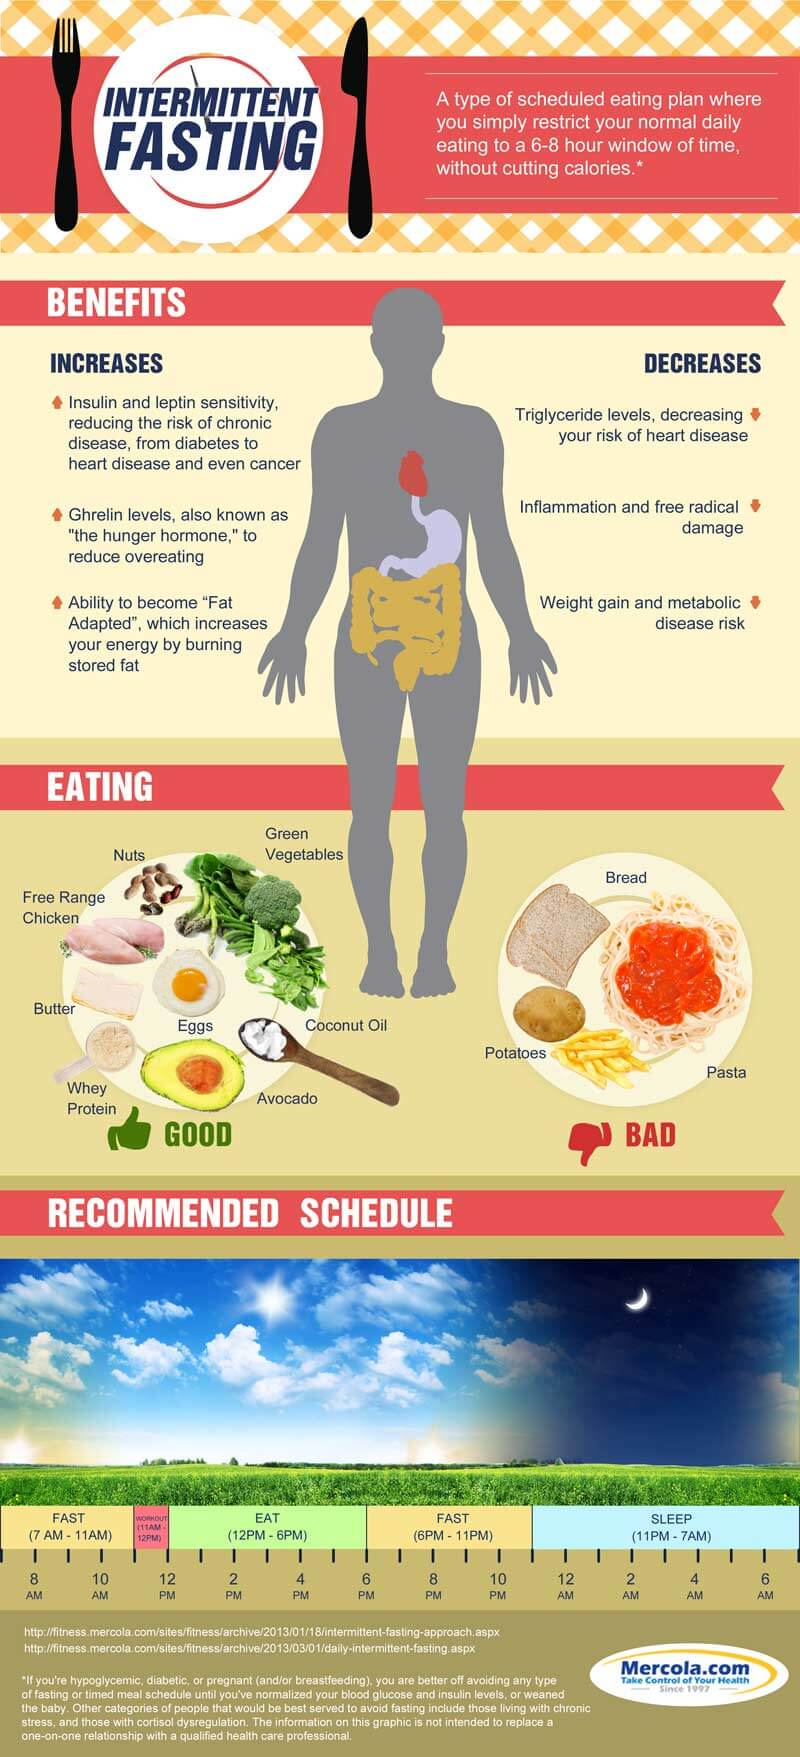 intermittent-fasting